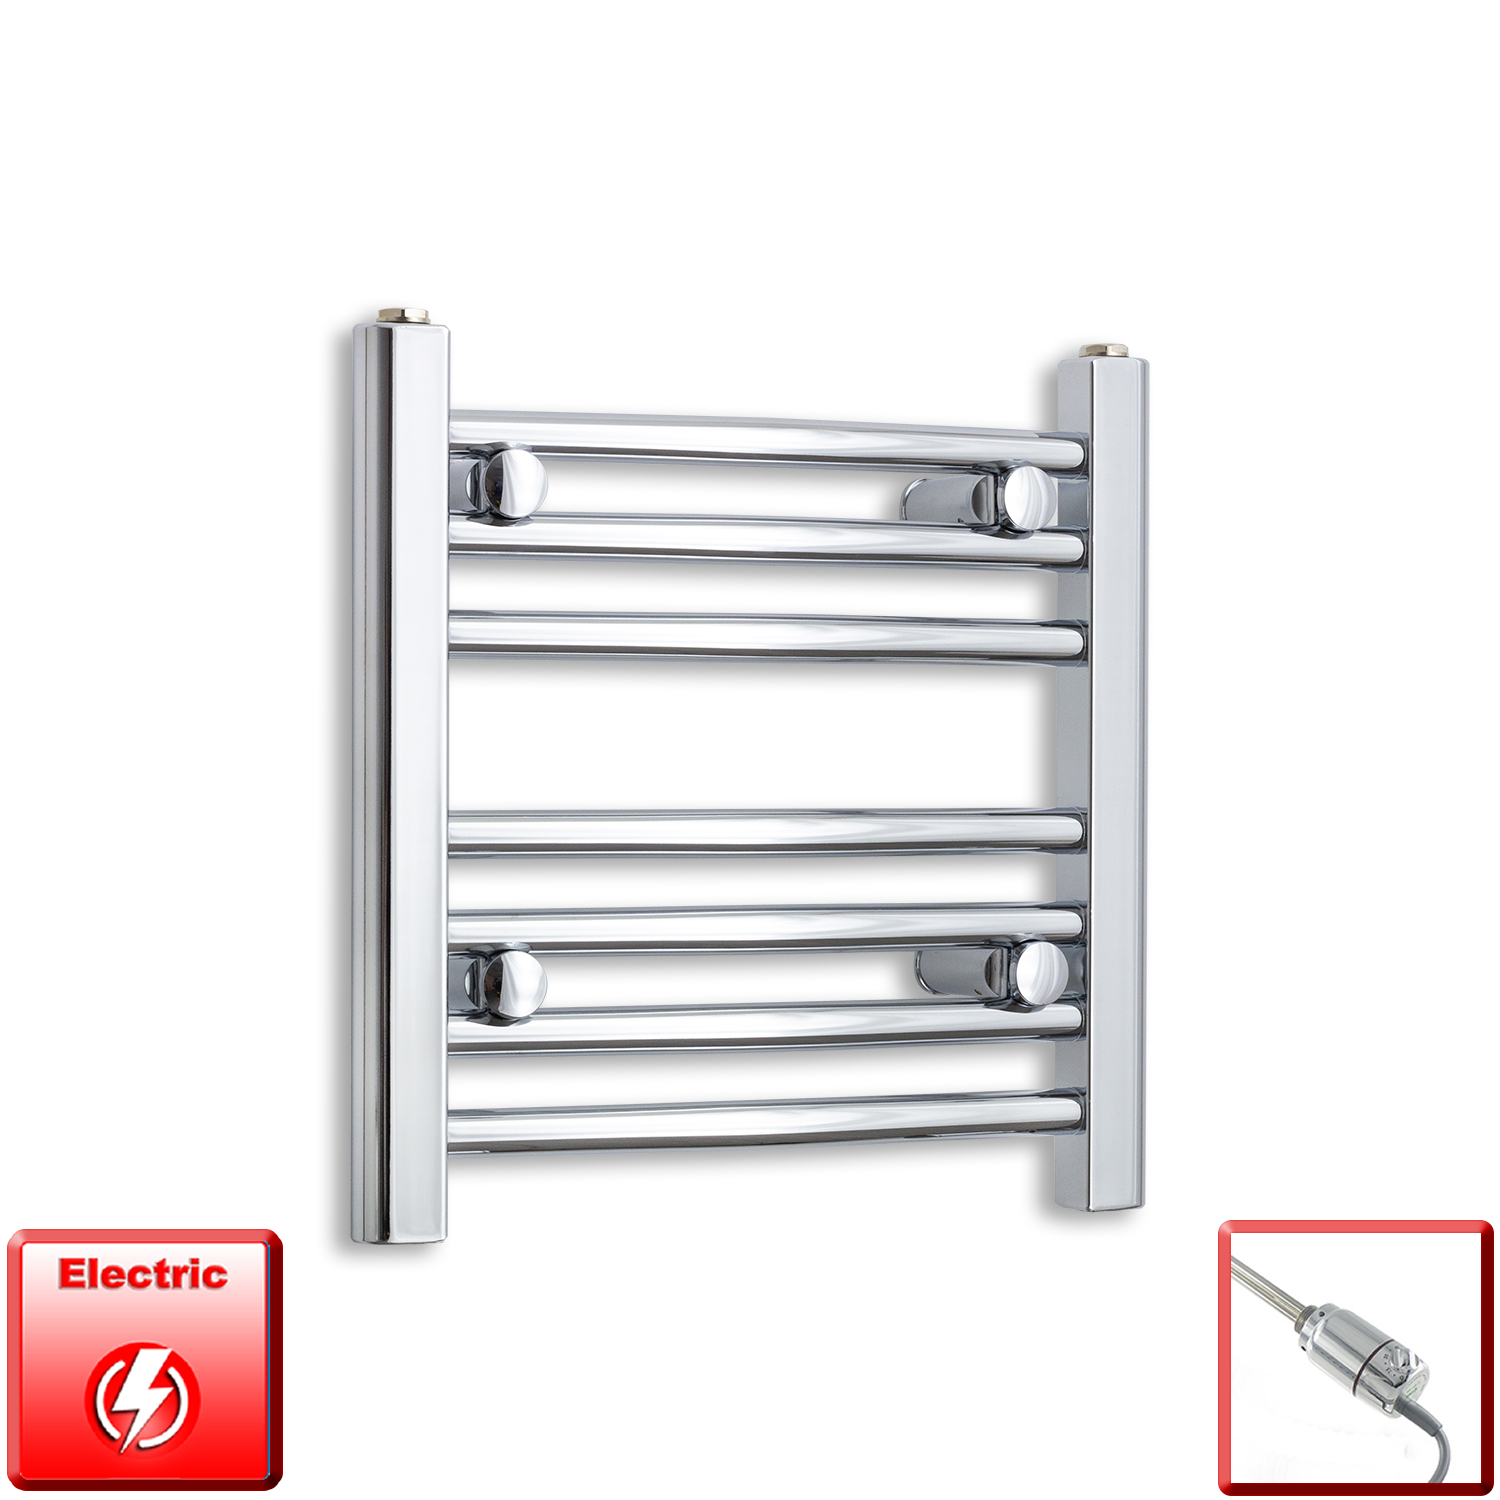 500mm Wide 400mm High Flat Or Curved Chrome Pre-Filled Electric Heated Towel Rail Radiator HTR,GT Thermostatic / Straight